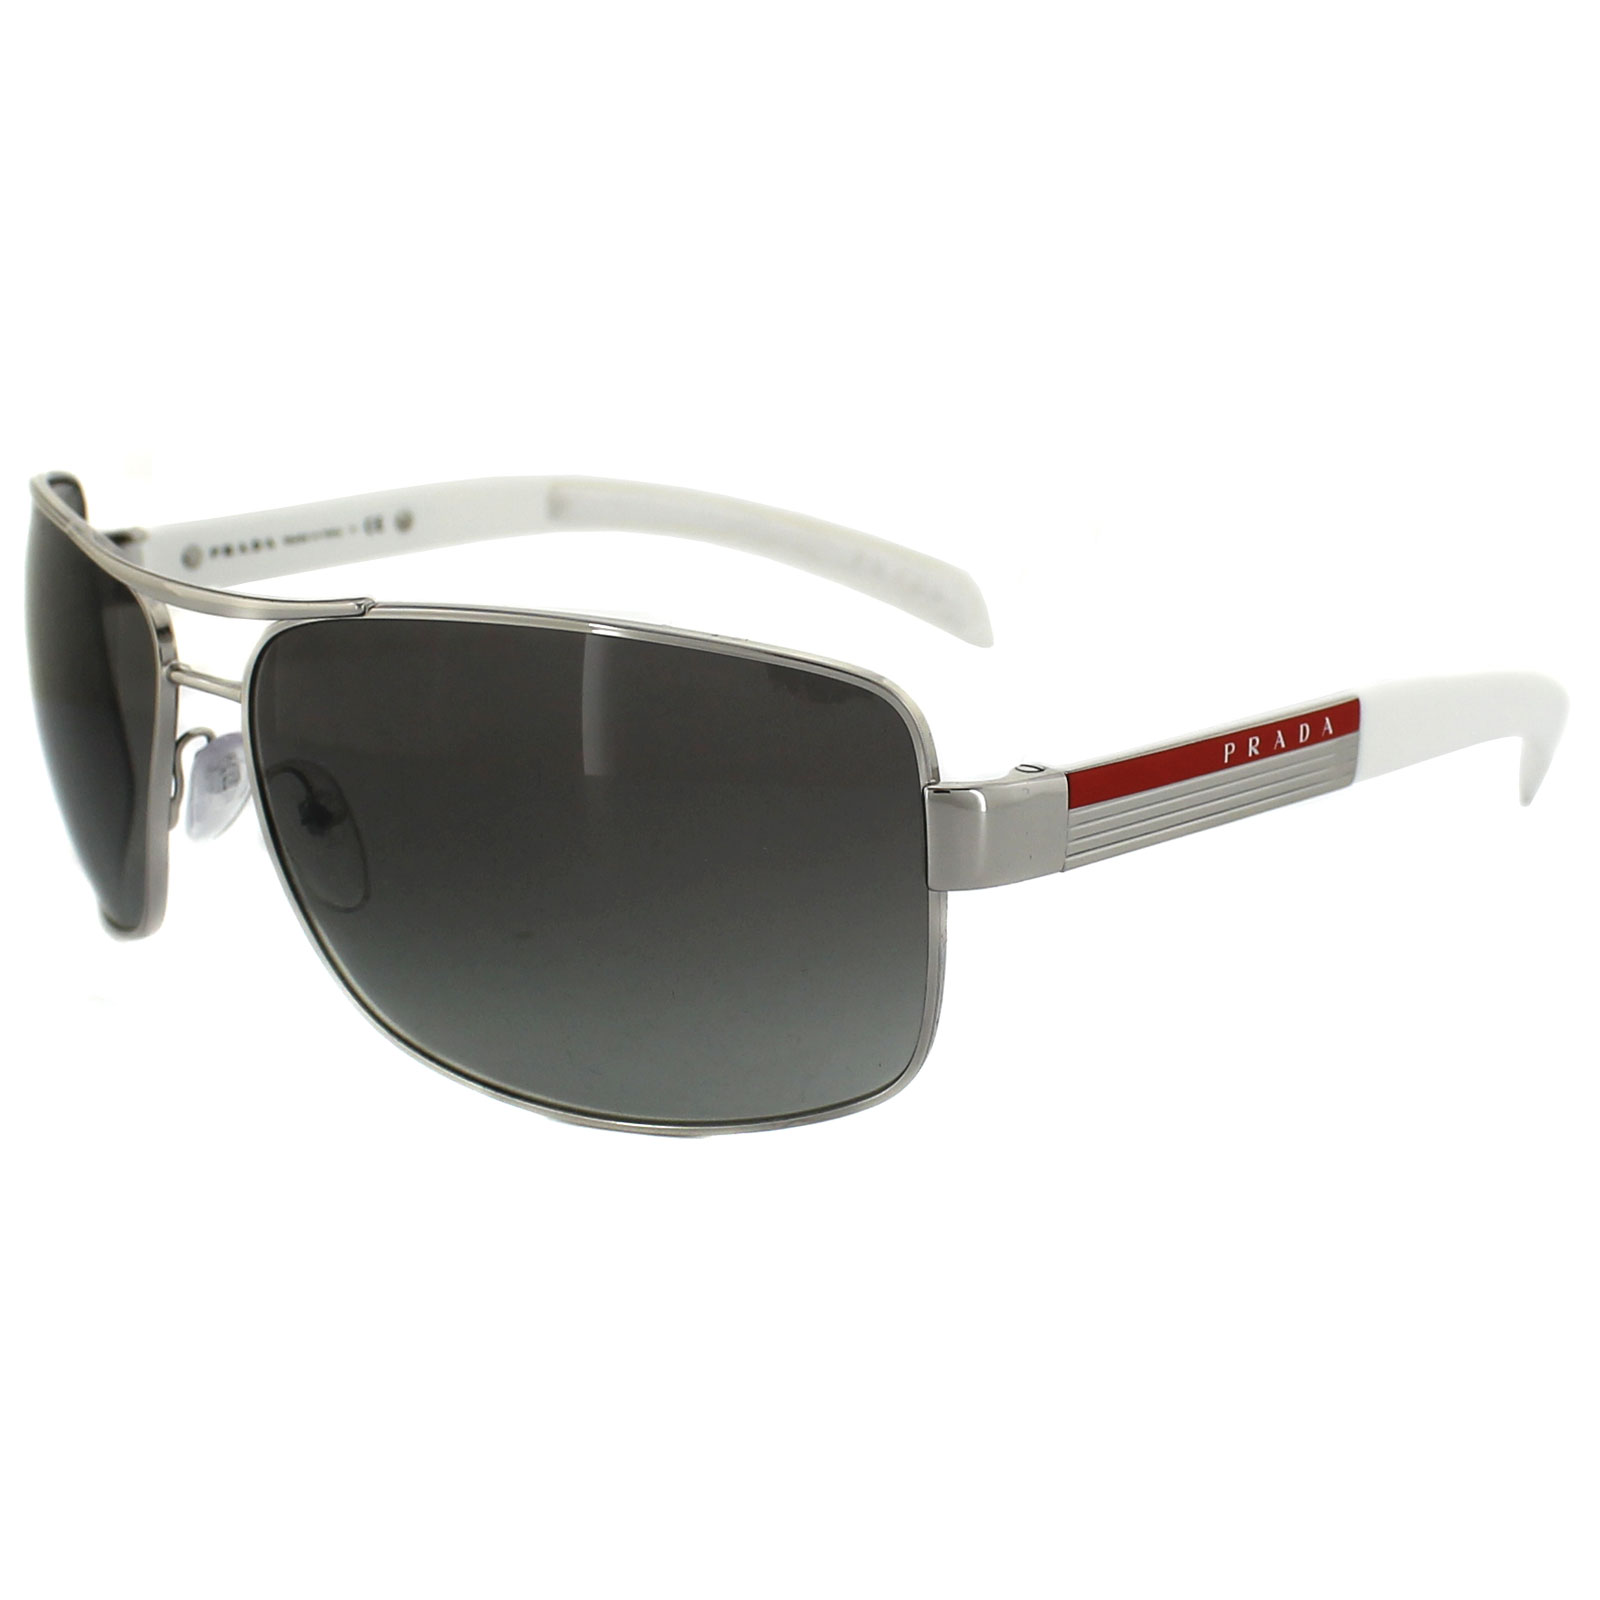 Prada Sport 54is Sunglasses Cheap Prada Sunglasses